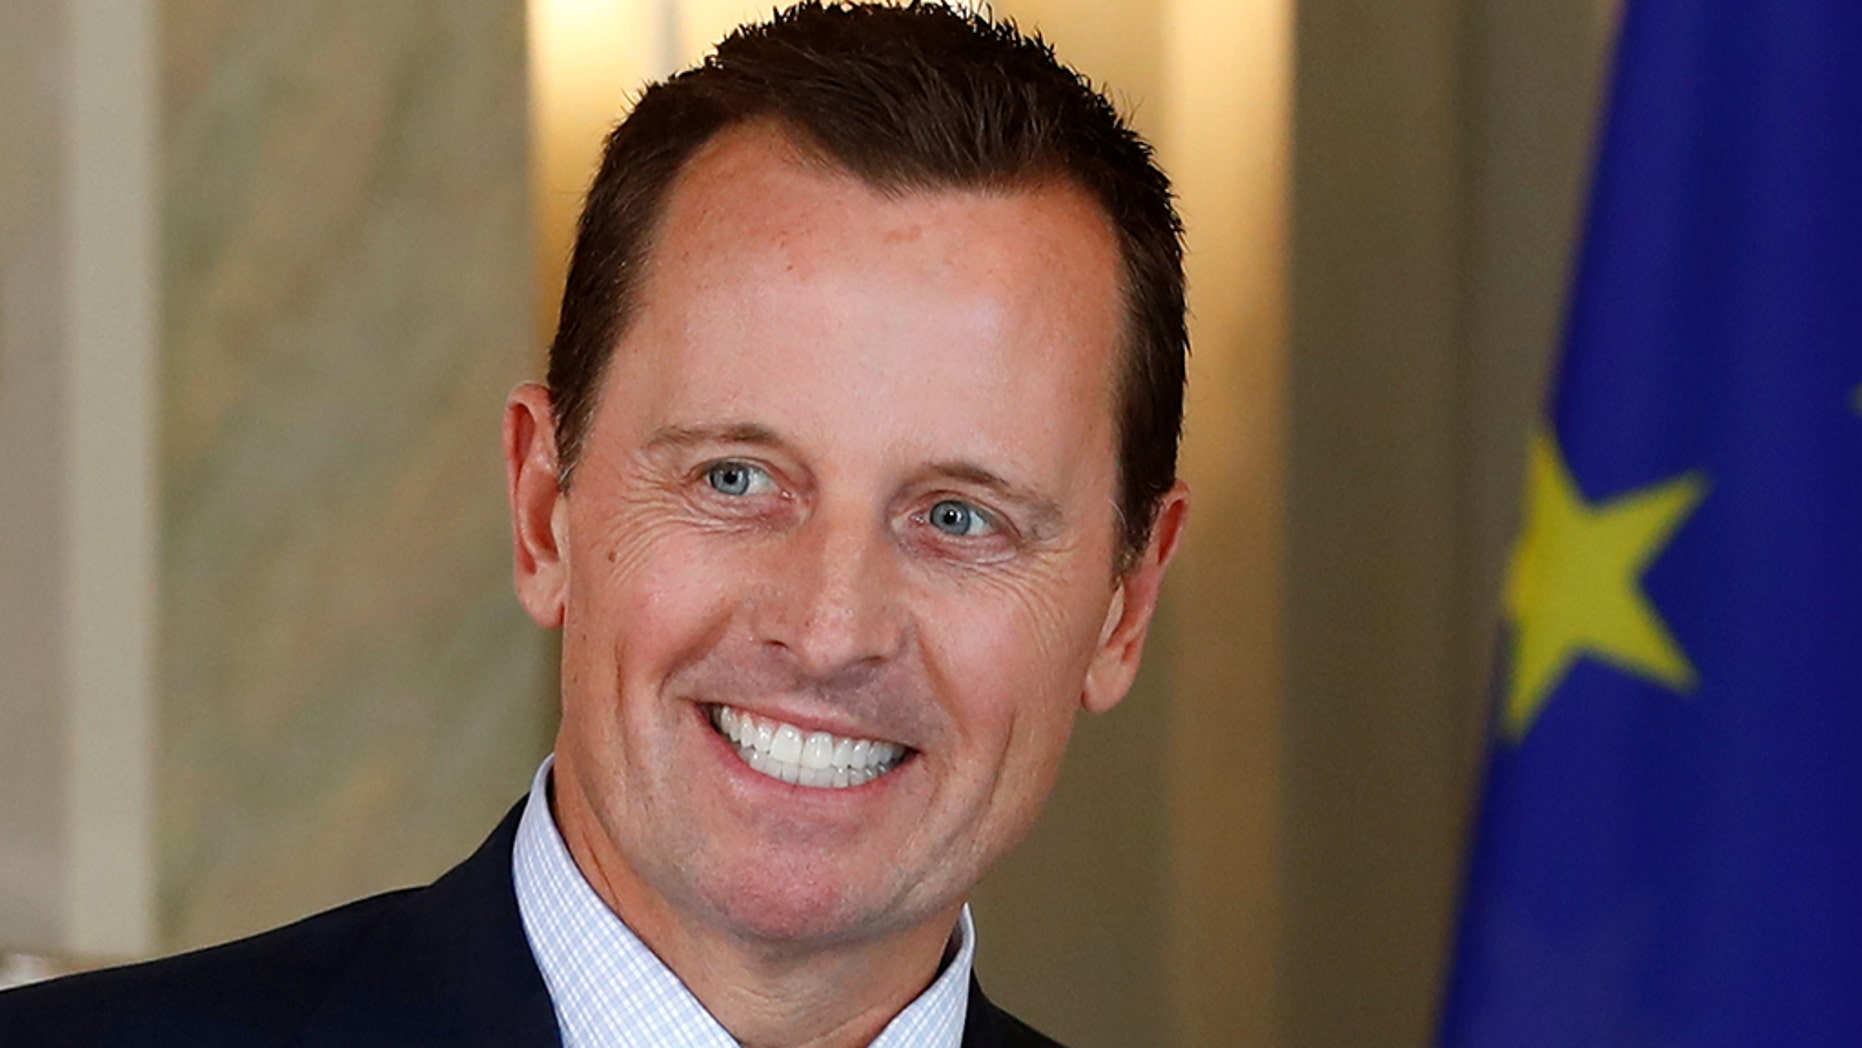 Richard Grenell, a long-time confidant of President Donald Trump has alienated some German politicians and diplomats with his robust approach.